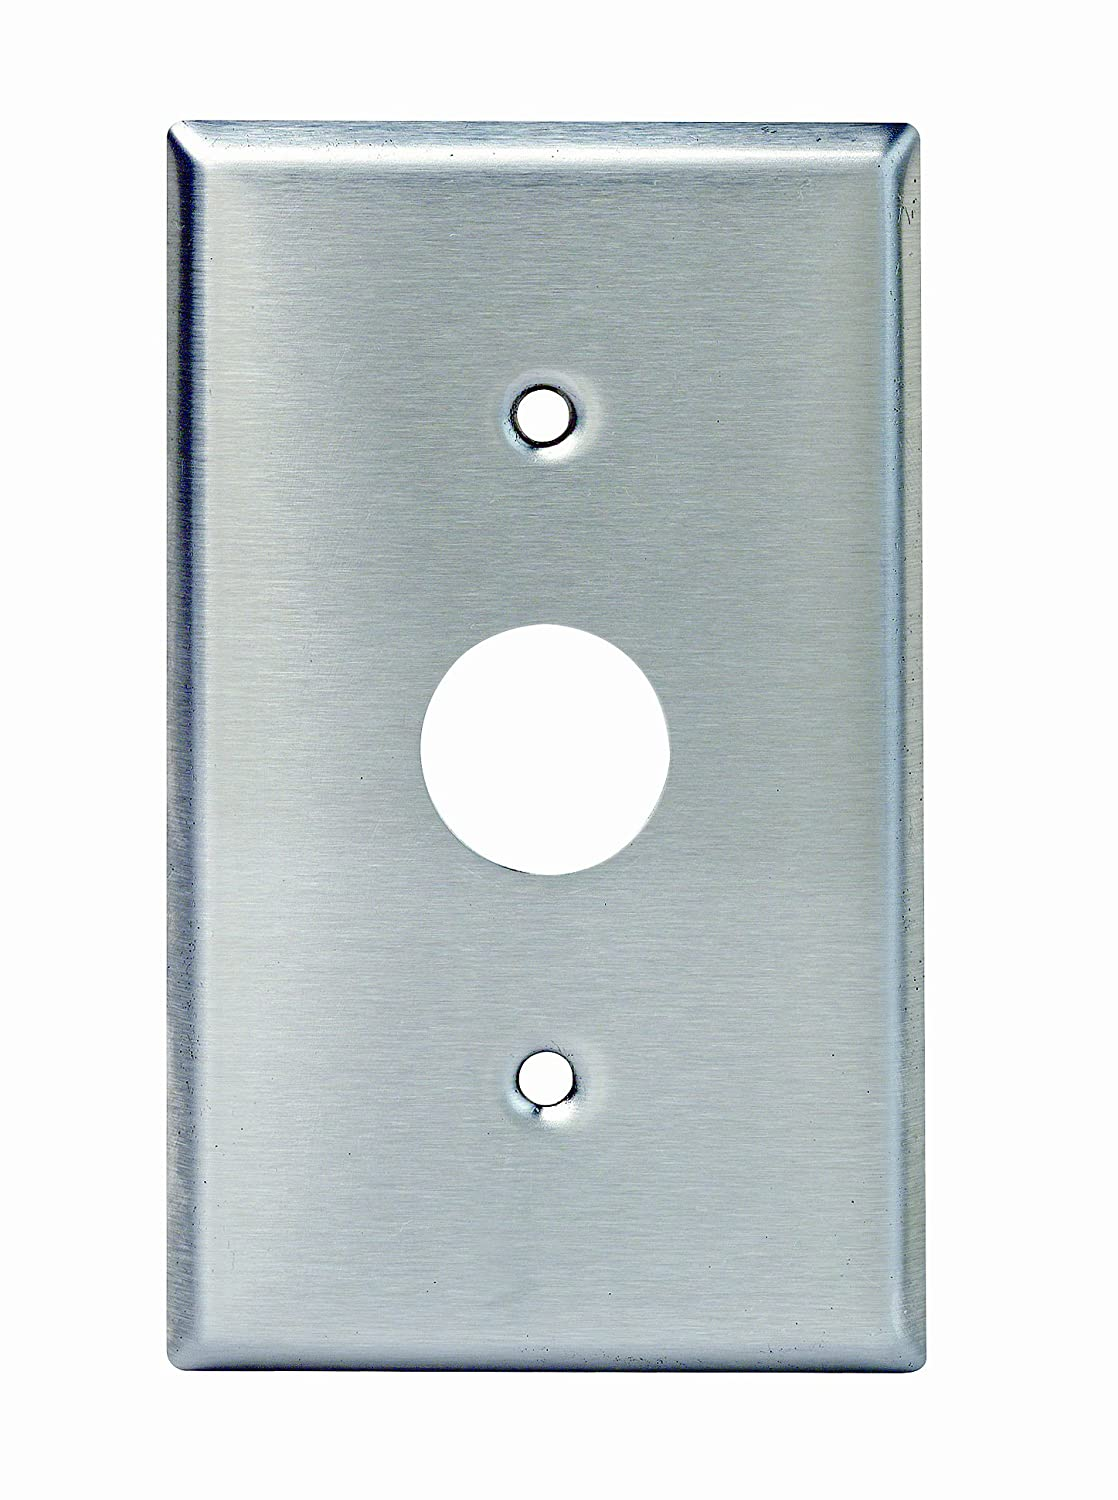 Leviton 84071-40 1-Gang Key Lock Power Switch Device Switch Wallplate, Standard Size, Spanner Screws and Tool, Device Mount (Stainless Steel)